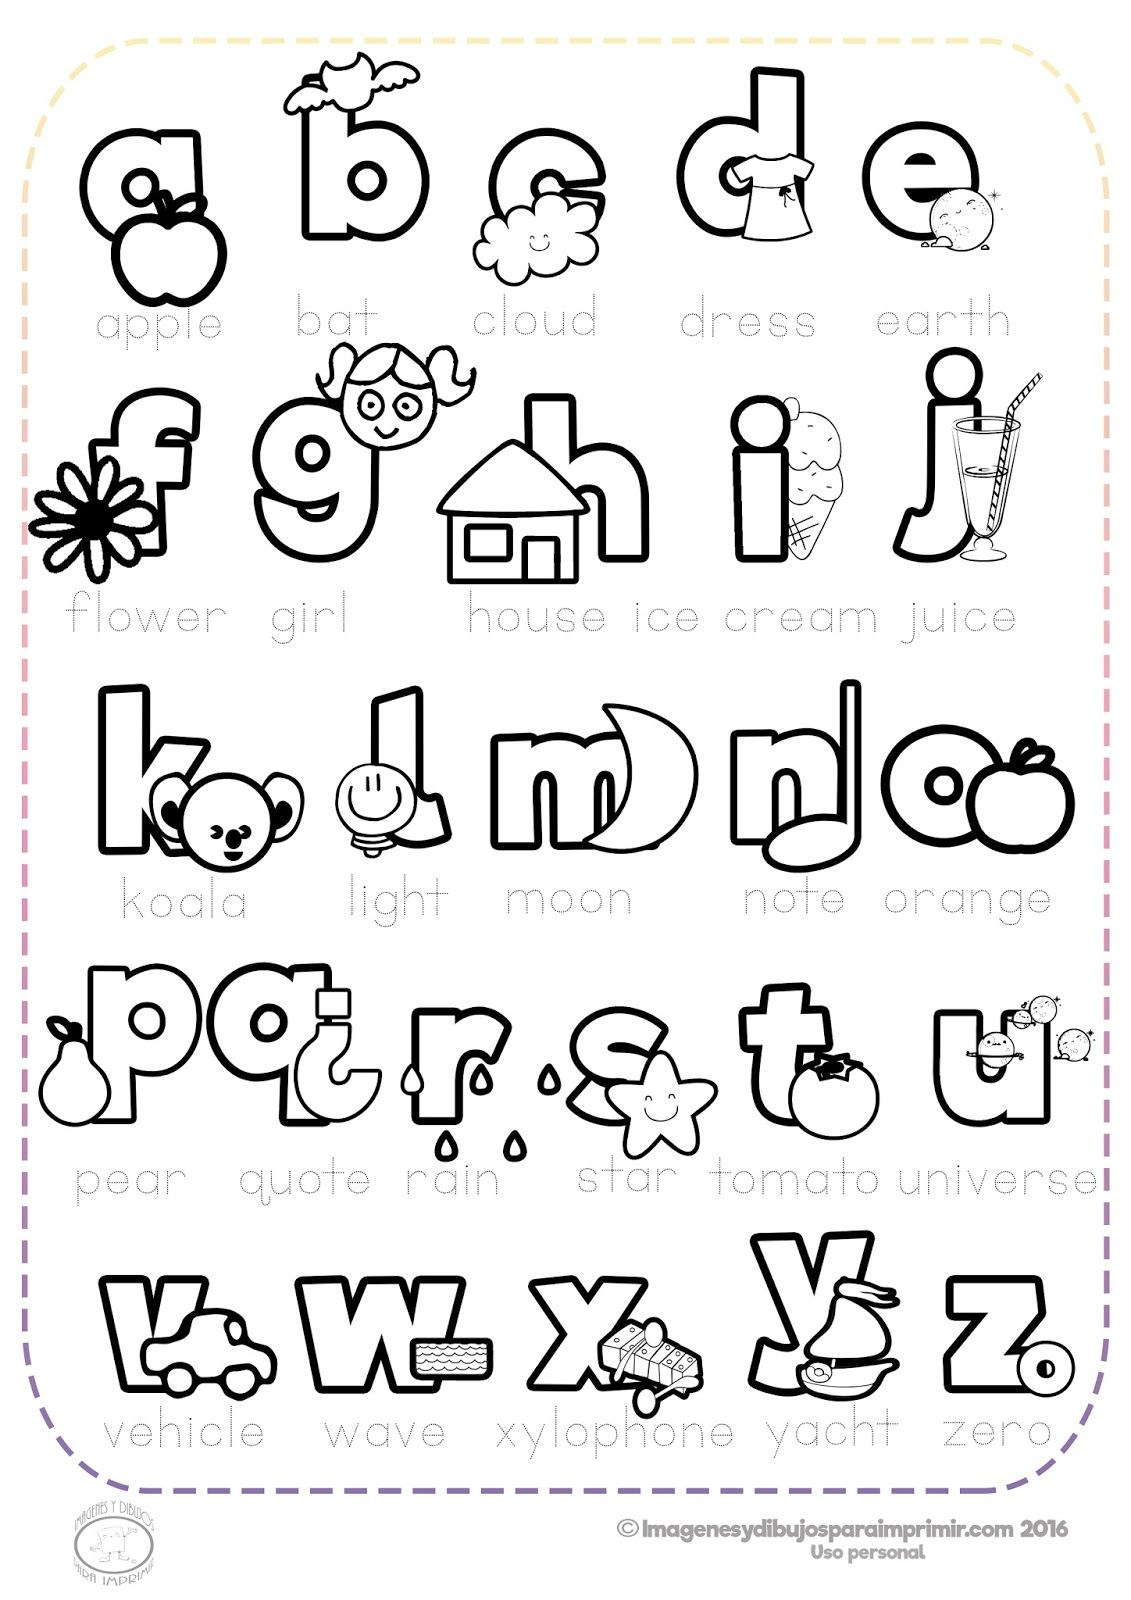 Pin By Jadi Mp On Inglés English Lessons For Kids English Classes For Kids Letter A Crafts